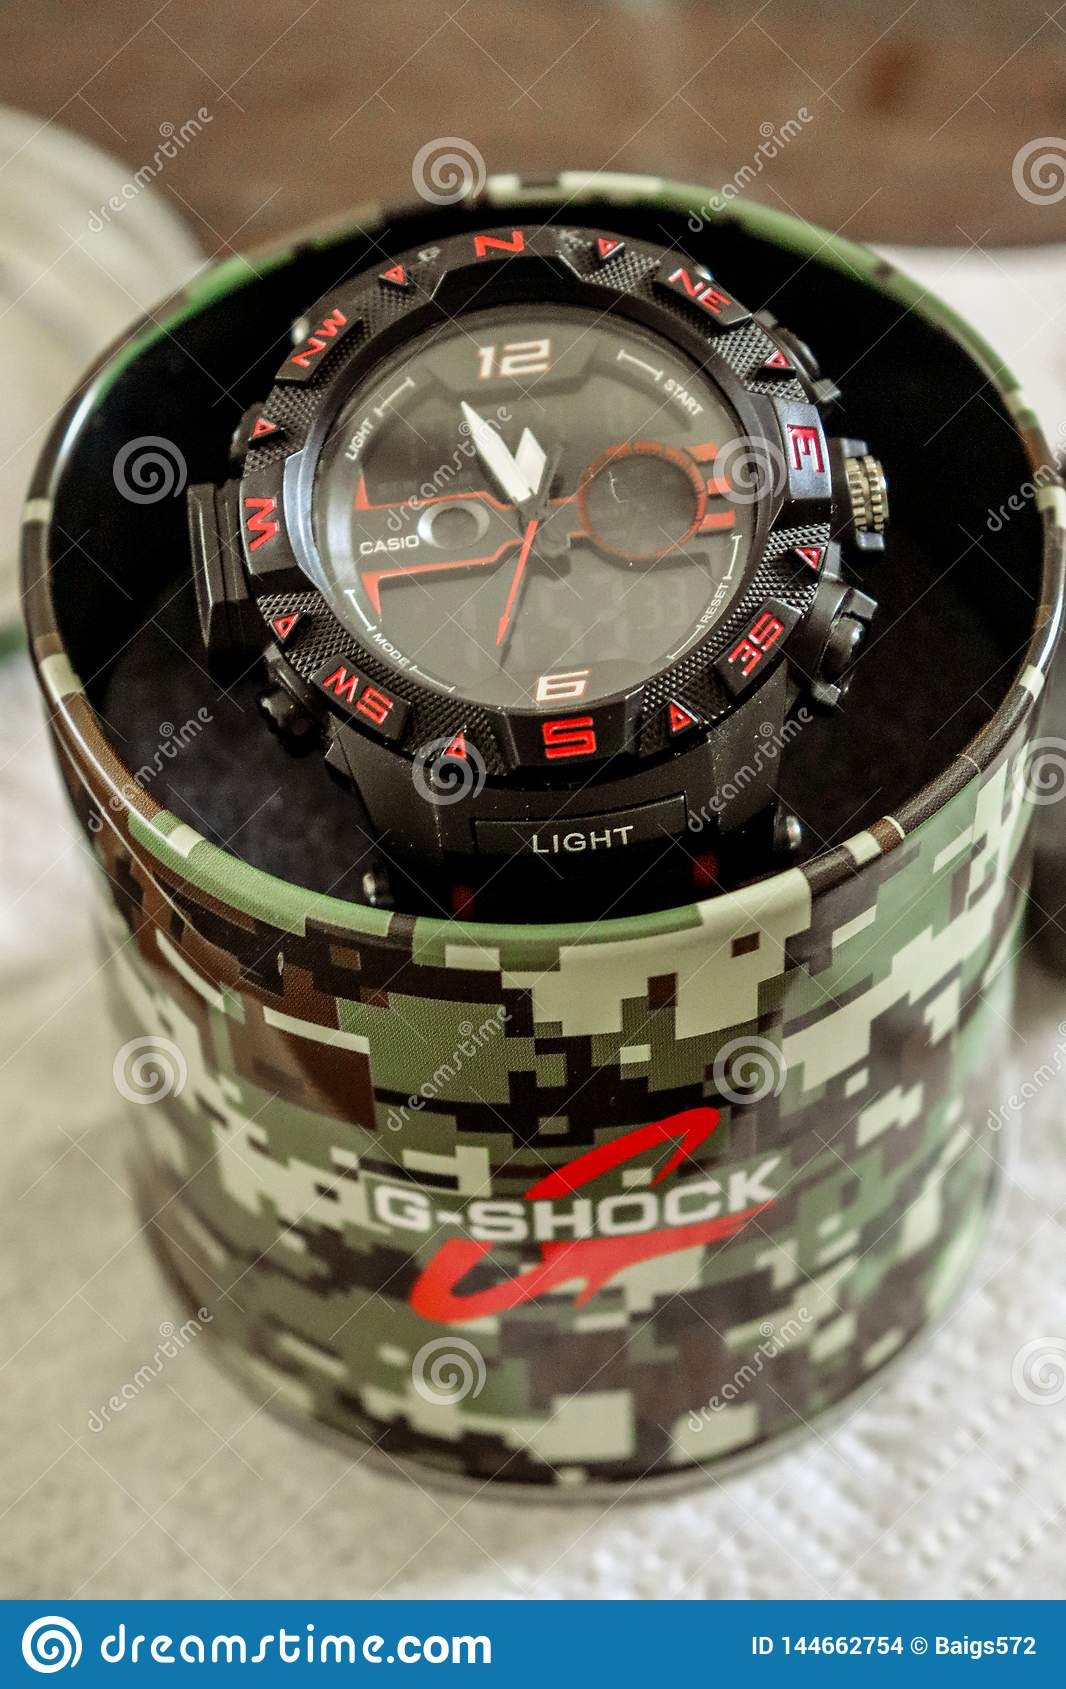 quality design c47ac 3d18a G_shock wrist watch editorial stock image. Image of clock ...